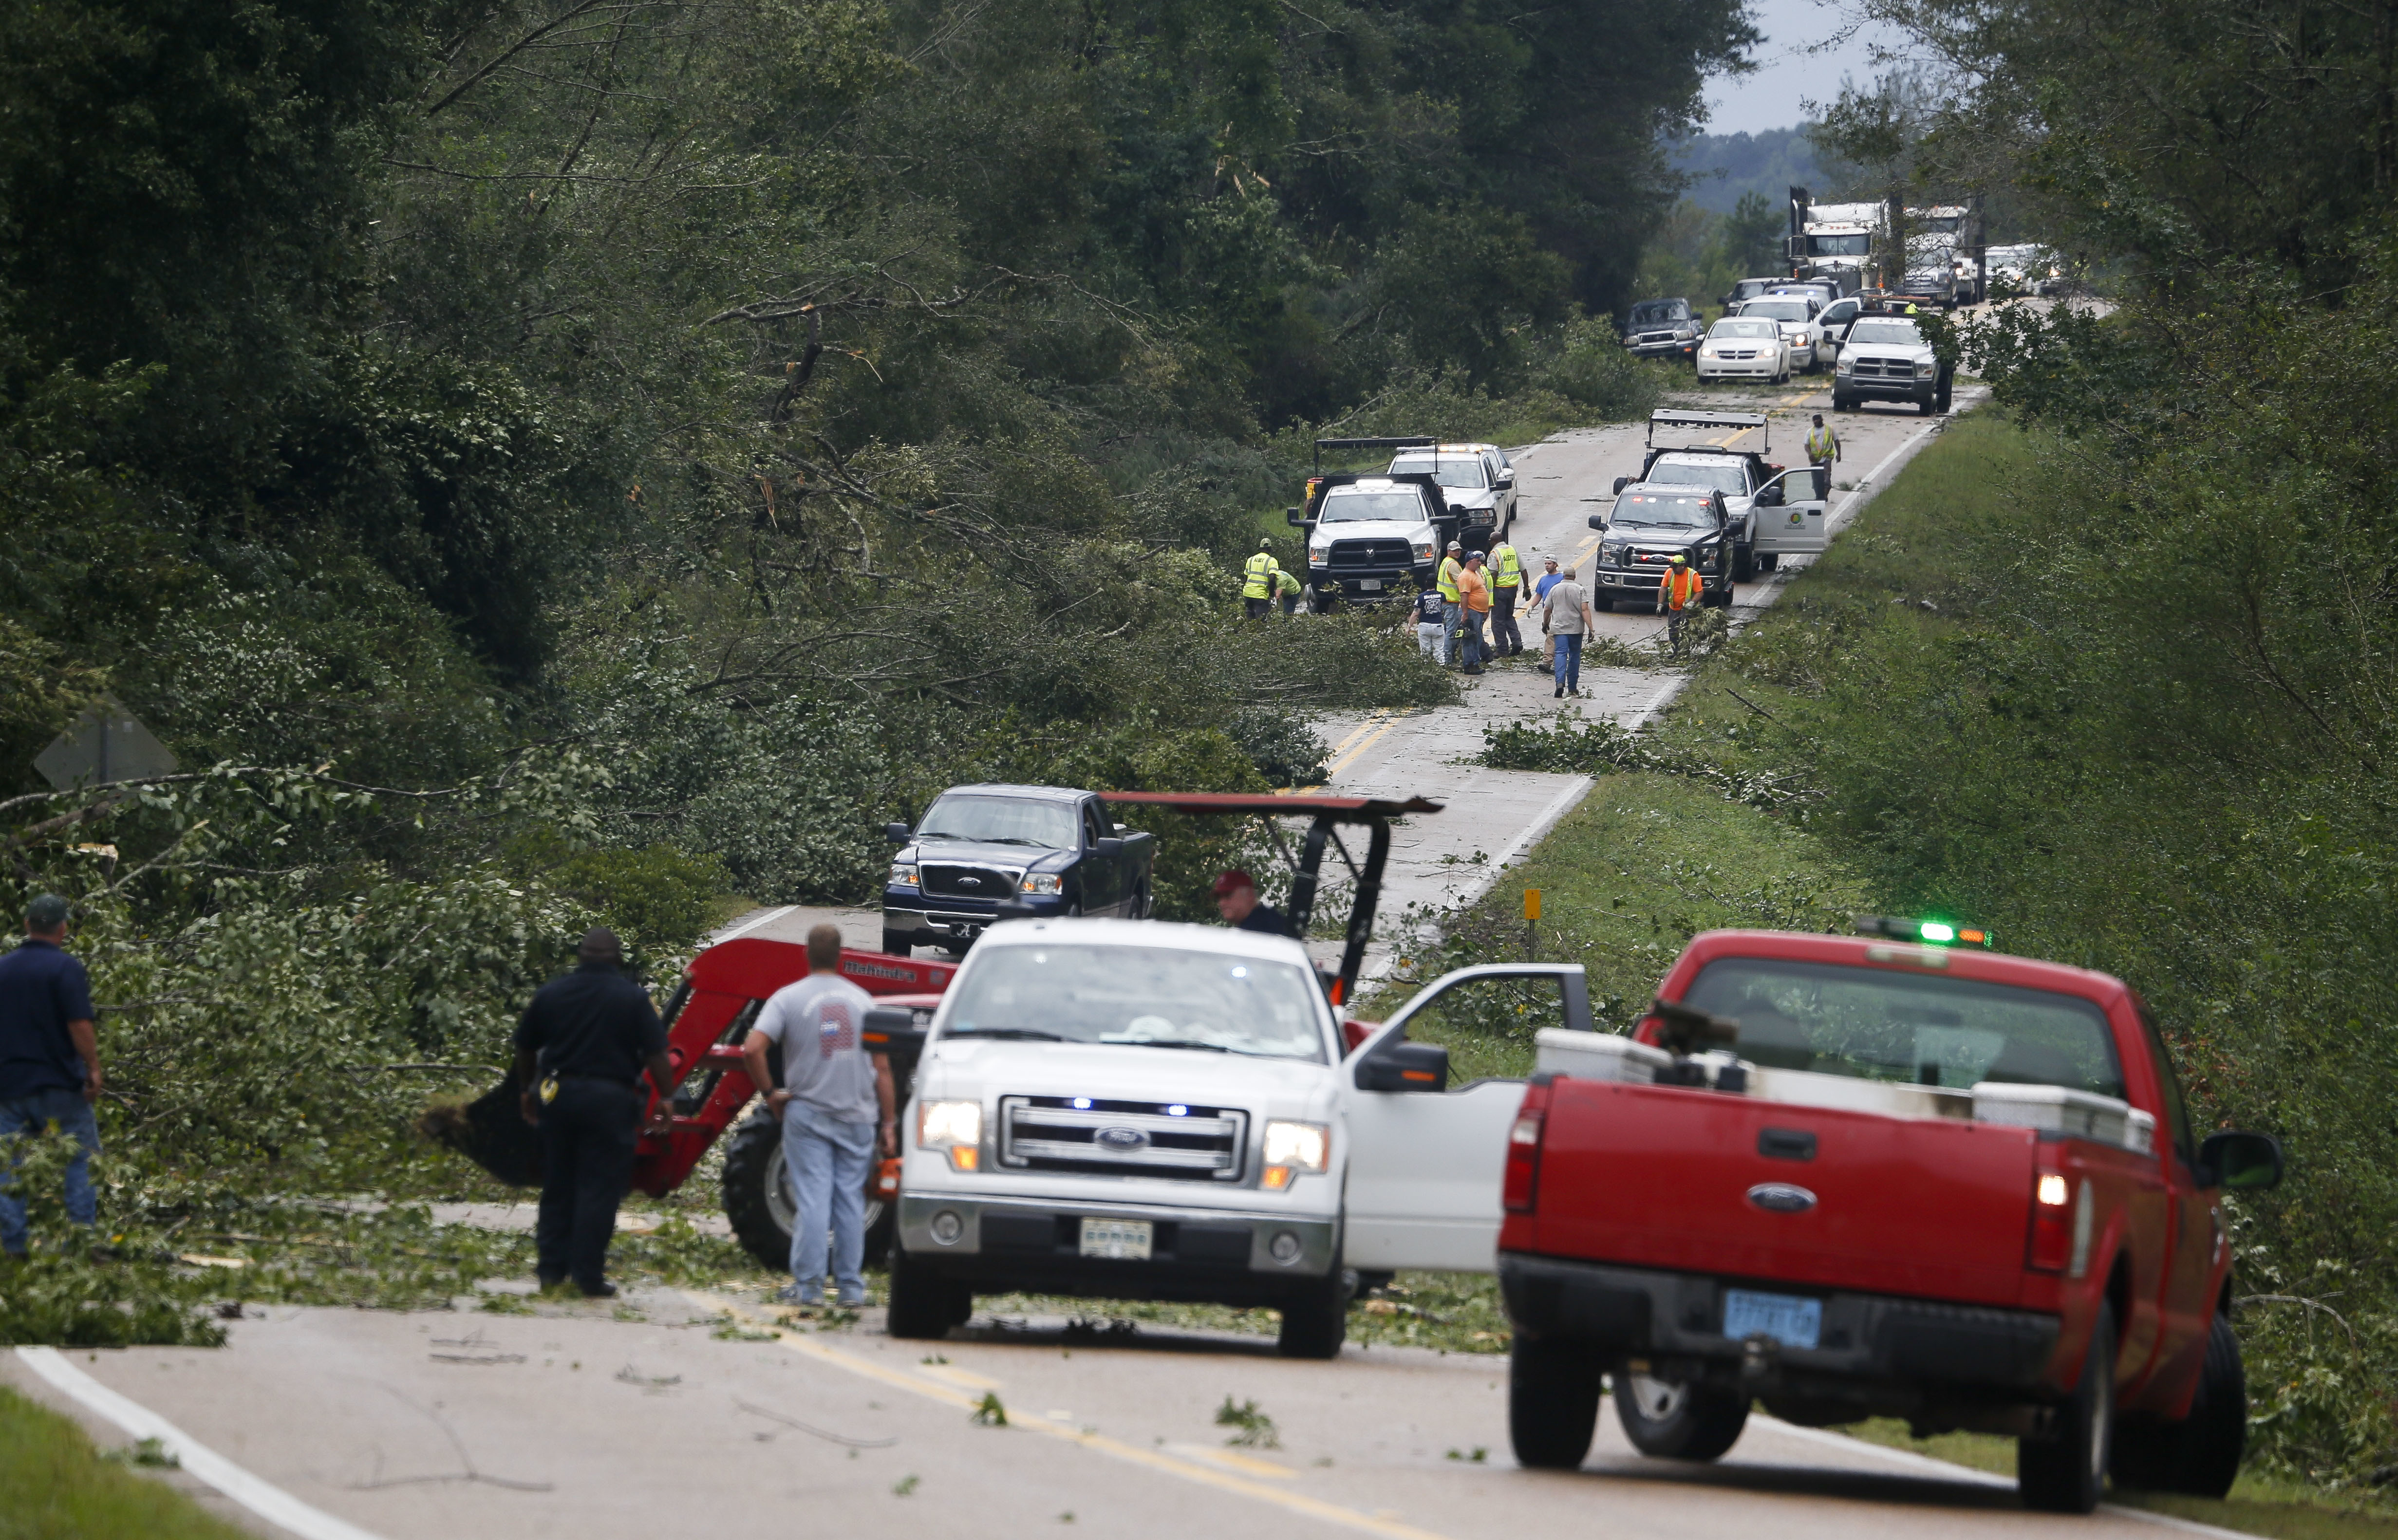 Volunteer firefighters work to clear Highway 17 in Pickens County, Ala., after a tornado struck Thursday, Aug. 31, 2017. The tornado damaged several homes in northwest Alabama as the remnants of Hurricane Harvey came through the state. (Gary Cosby Jr./The Tuscaloosa News via AP)